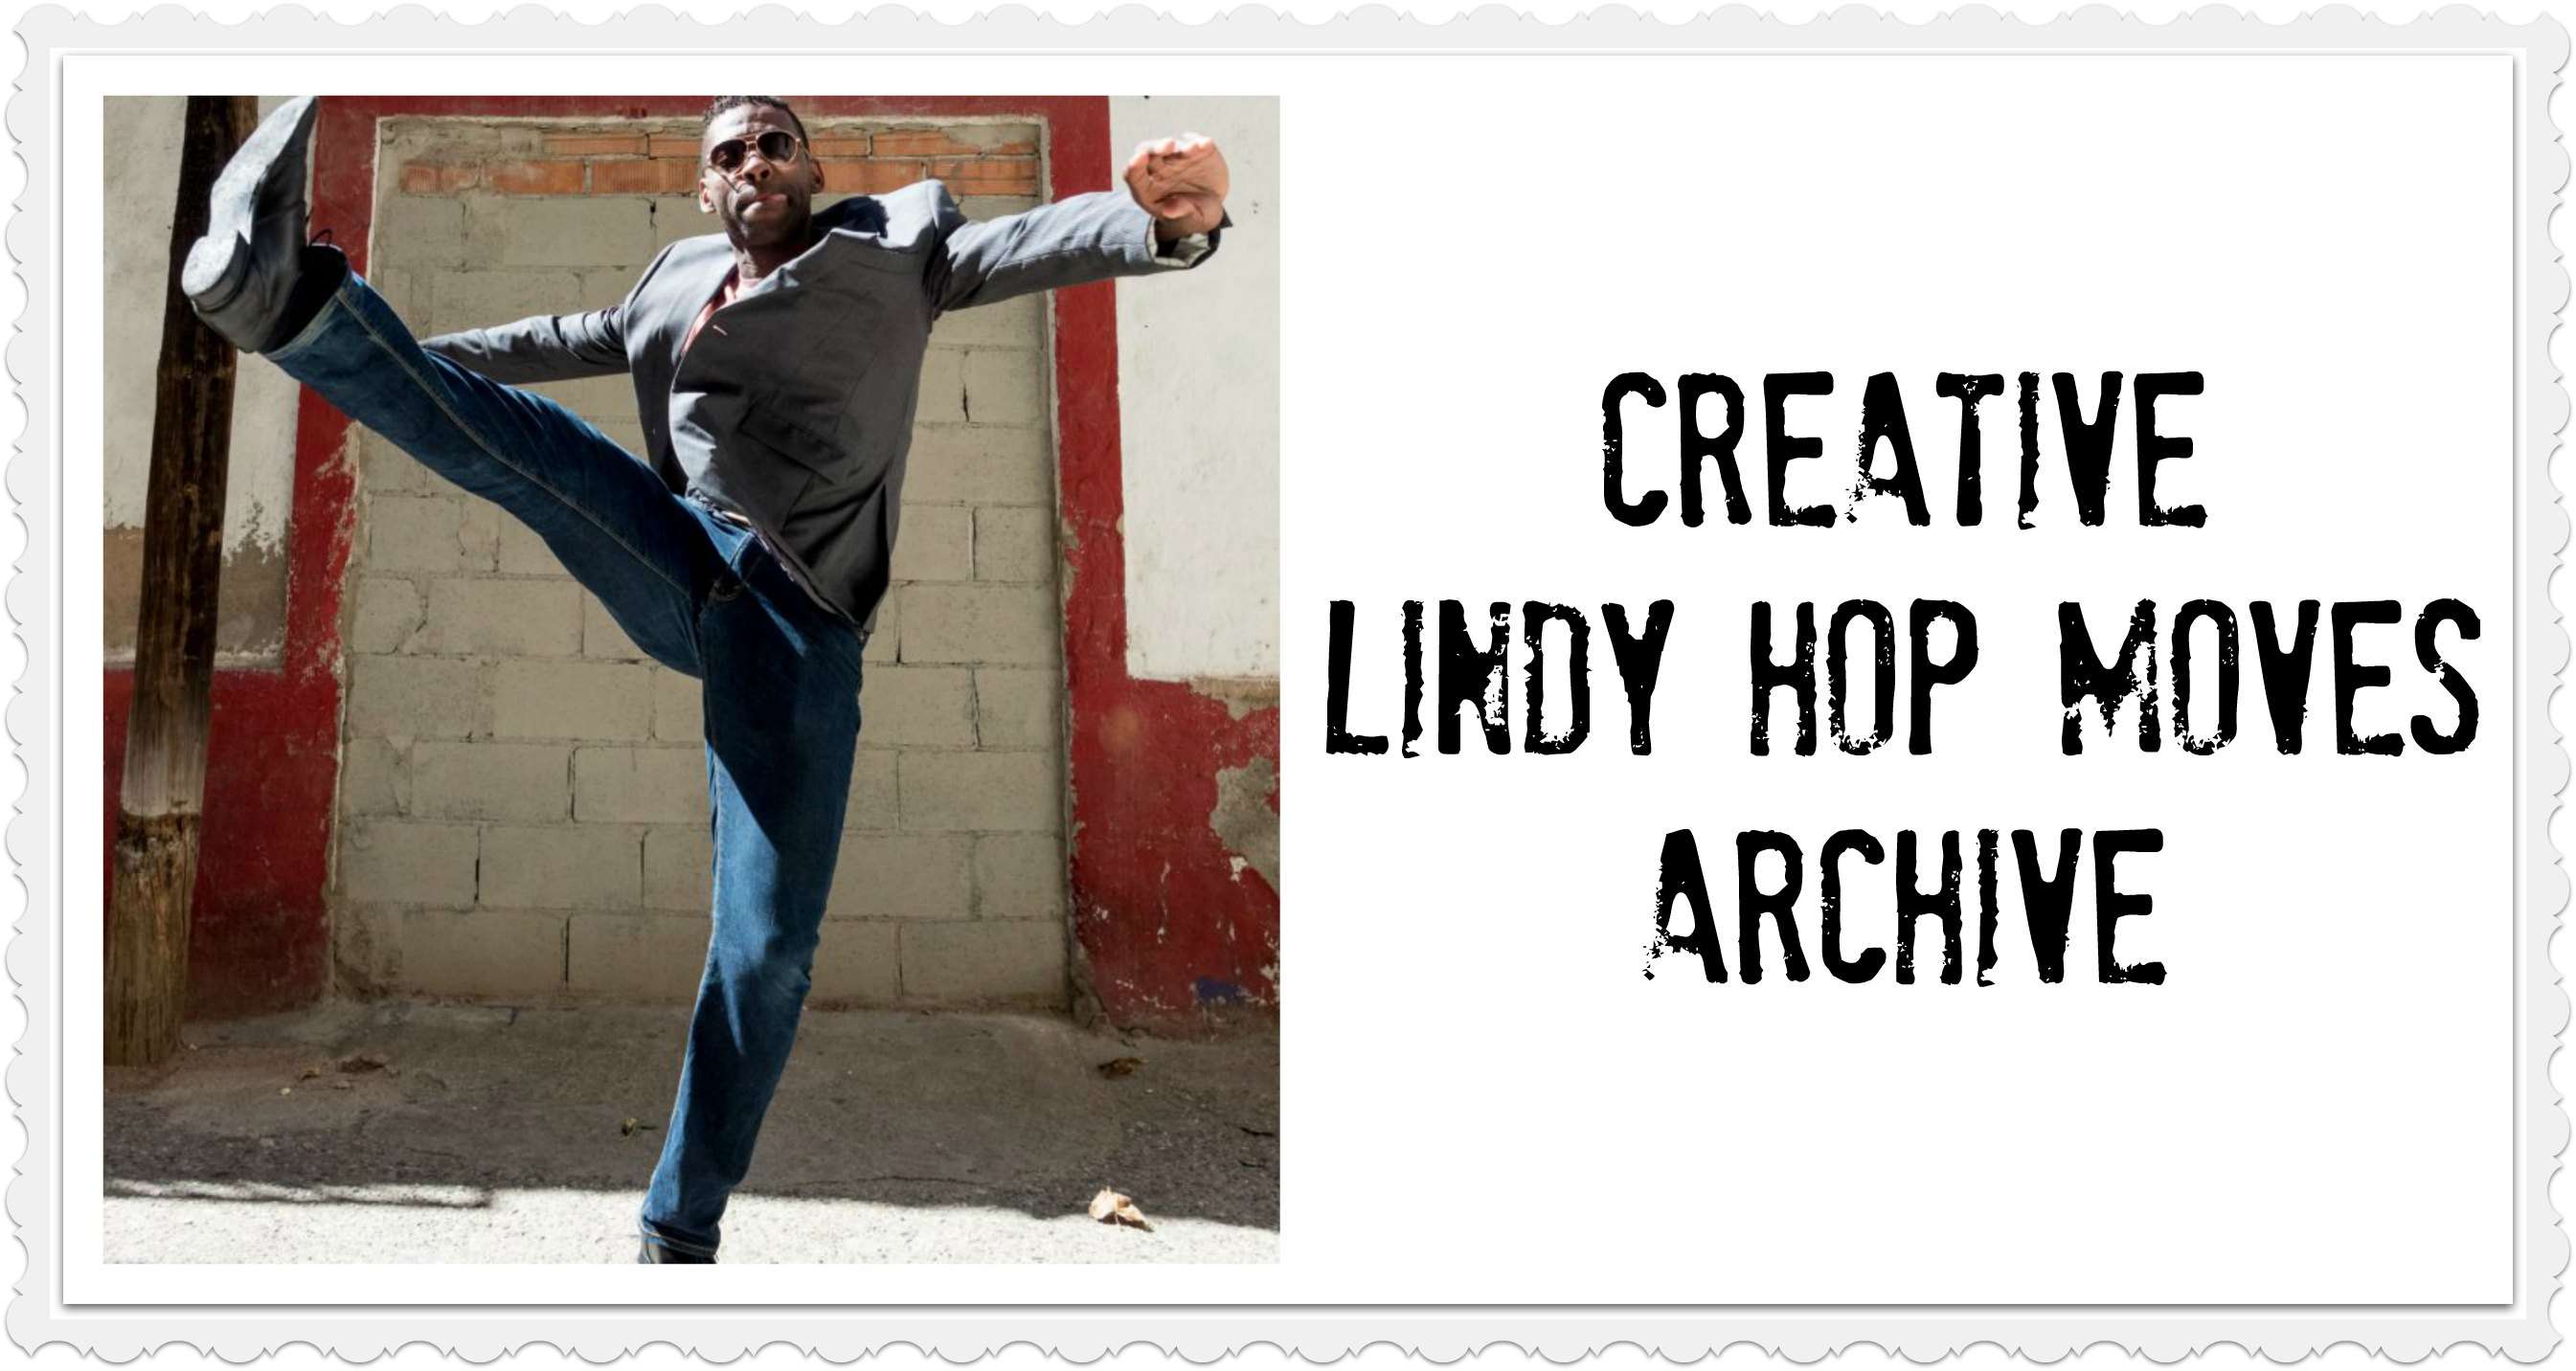 creative lindy hop moves